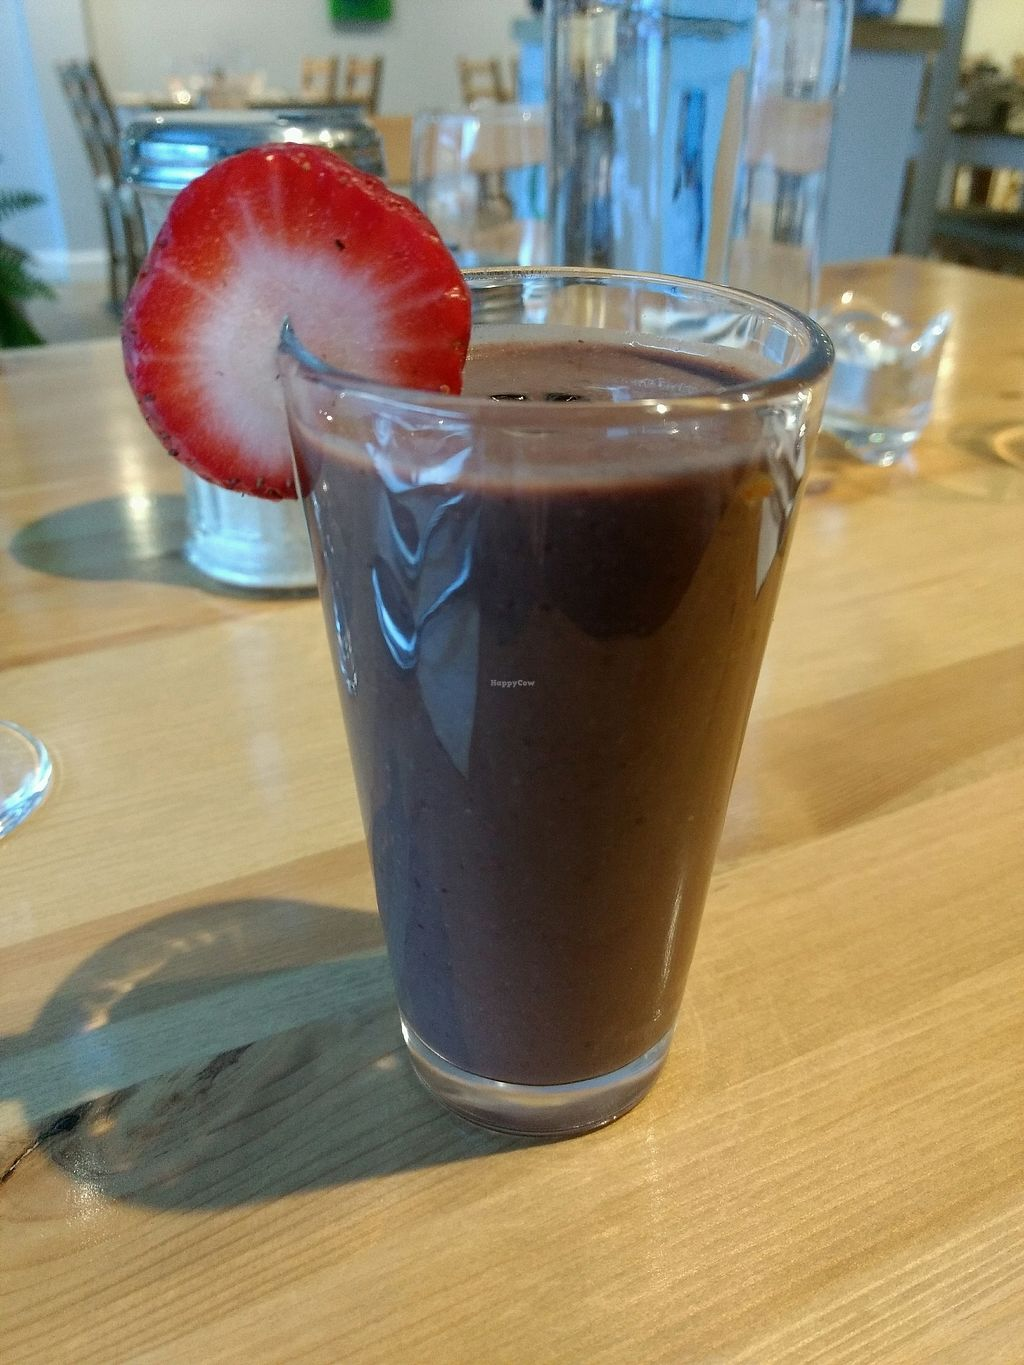 """Photo of Le Bistro V Riviere-du-Loup  by <a href=""""/members/profile/LaumaDupuis"""">LaumaDupuis</a> <br/>smoothie cerises chocolat <br/> March 13, 2018  - <a href='/contact/abuse/image/110481/370242'>Report</a>"""